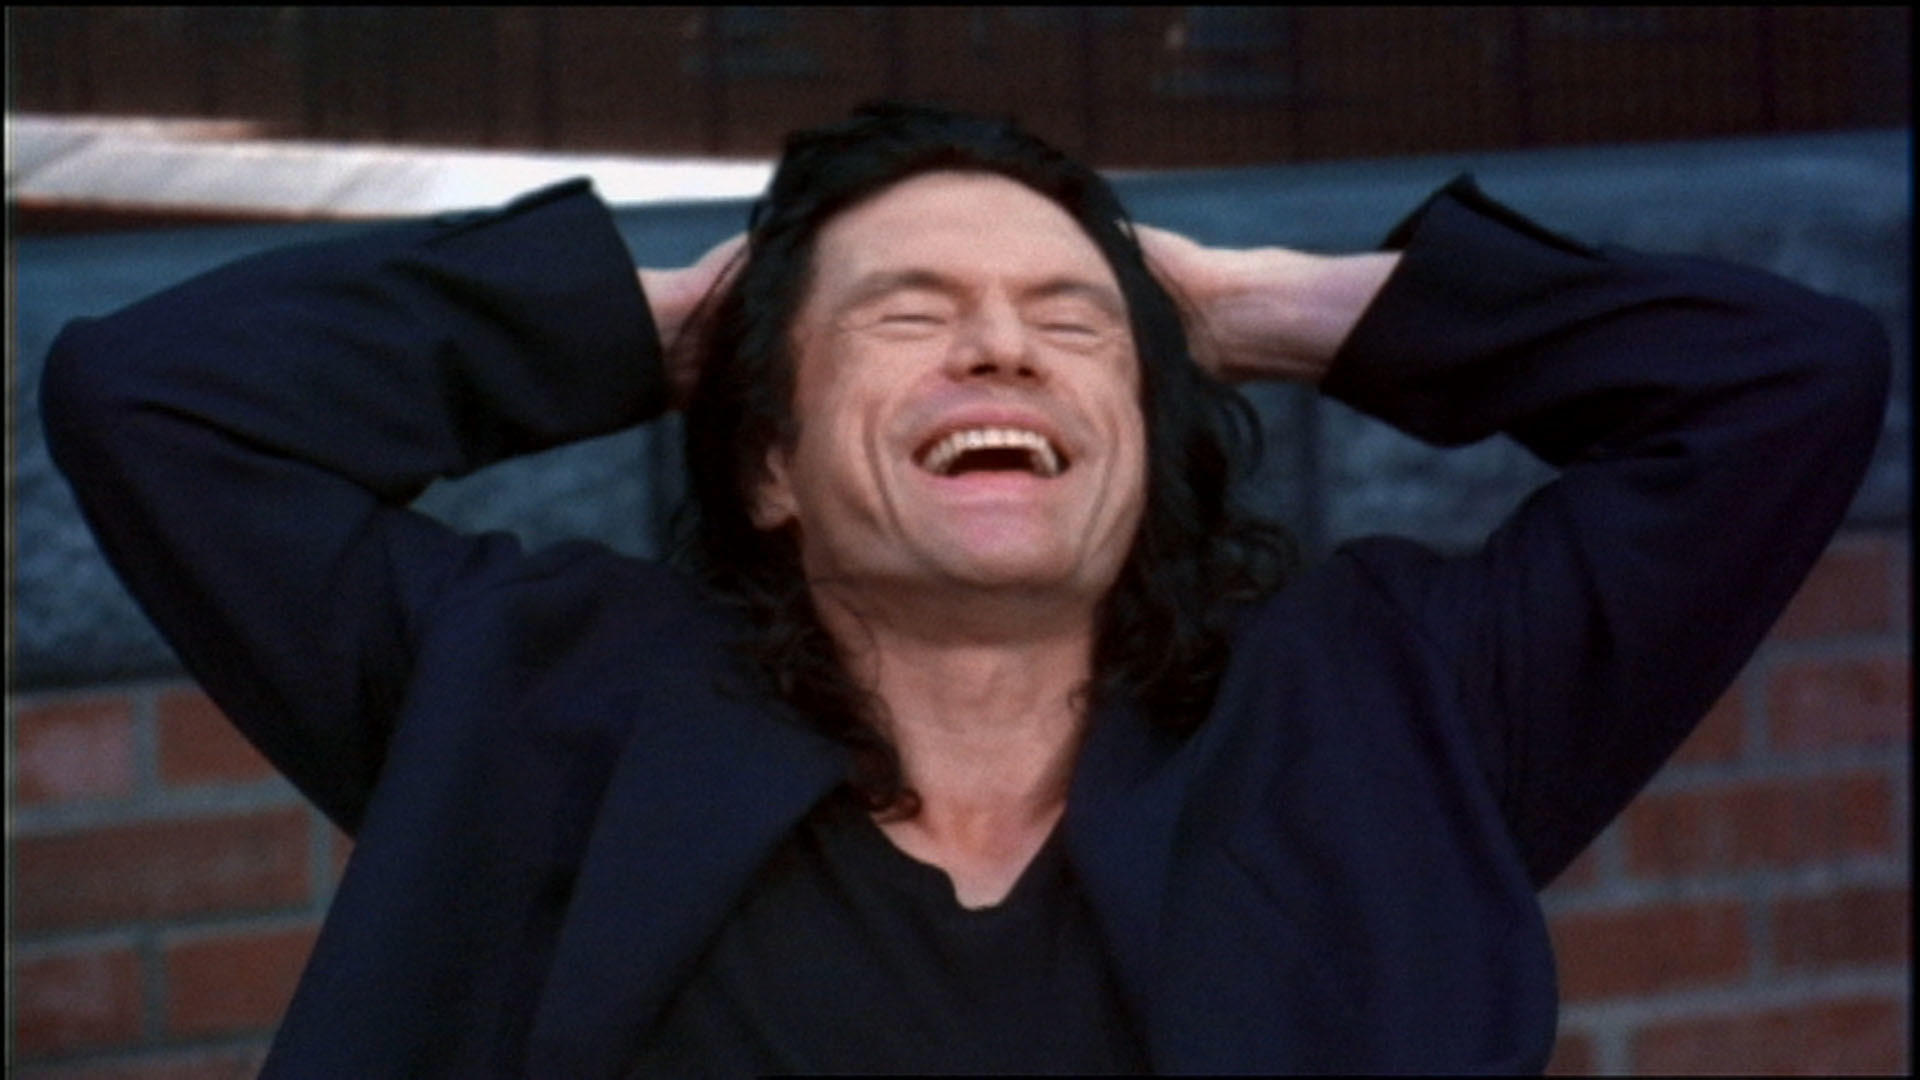 Watch a special screening of cult classic The Room this January